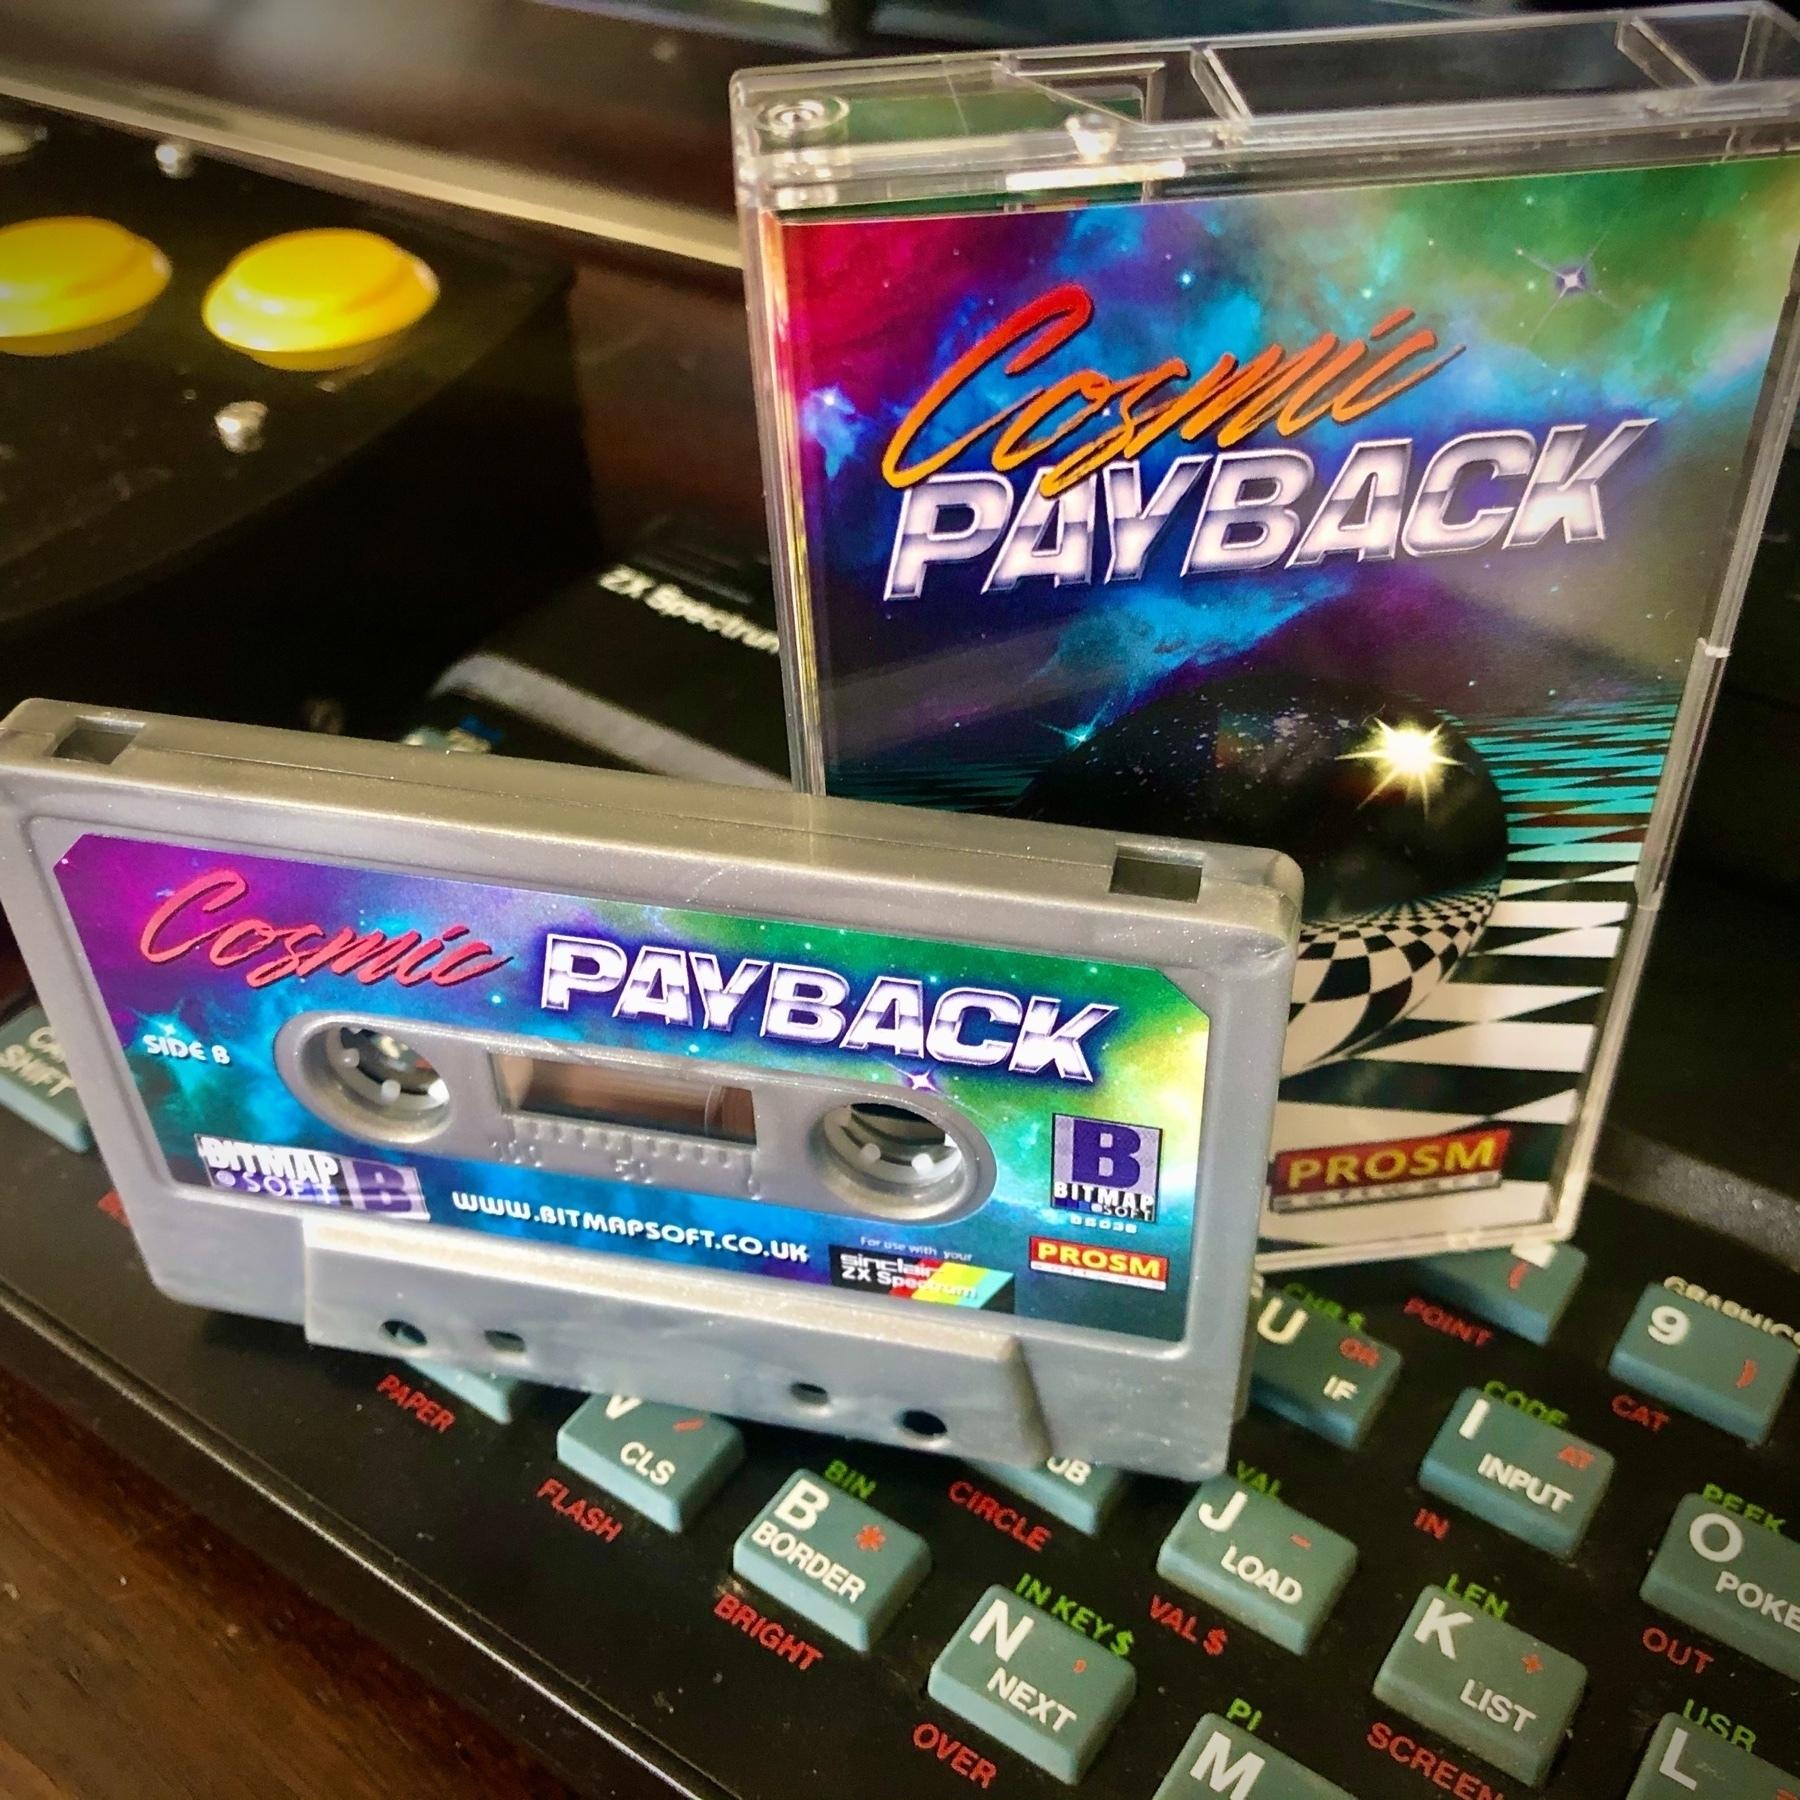 ZX Spectrum game Cosmic Payback on cassette tape